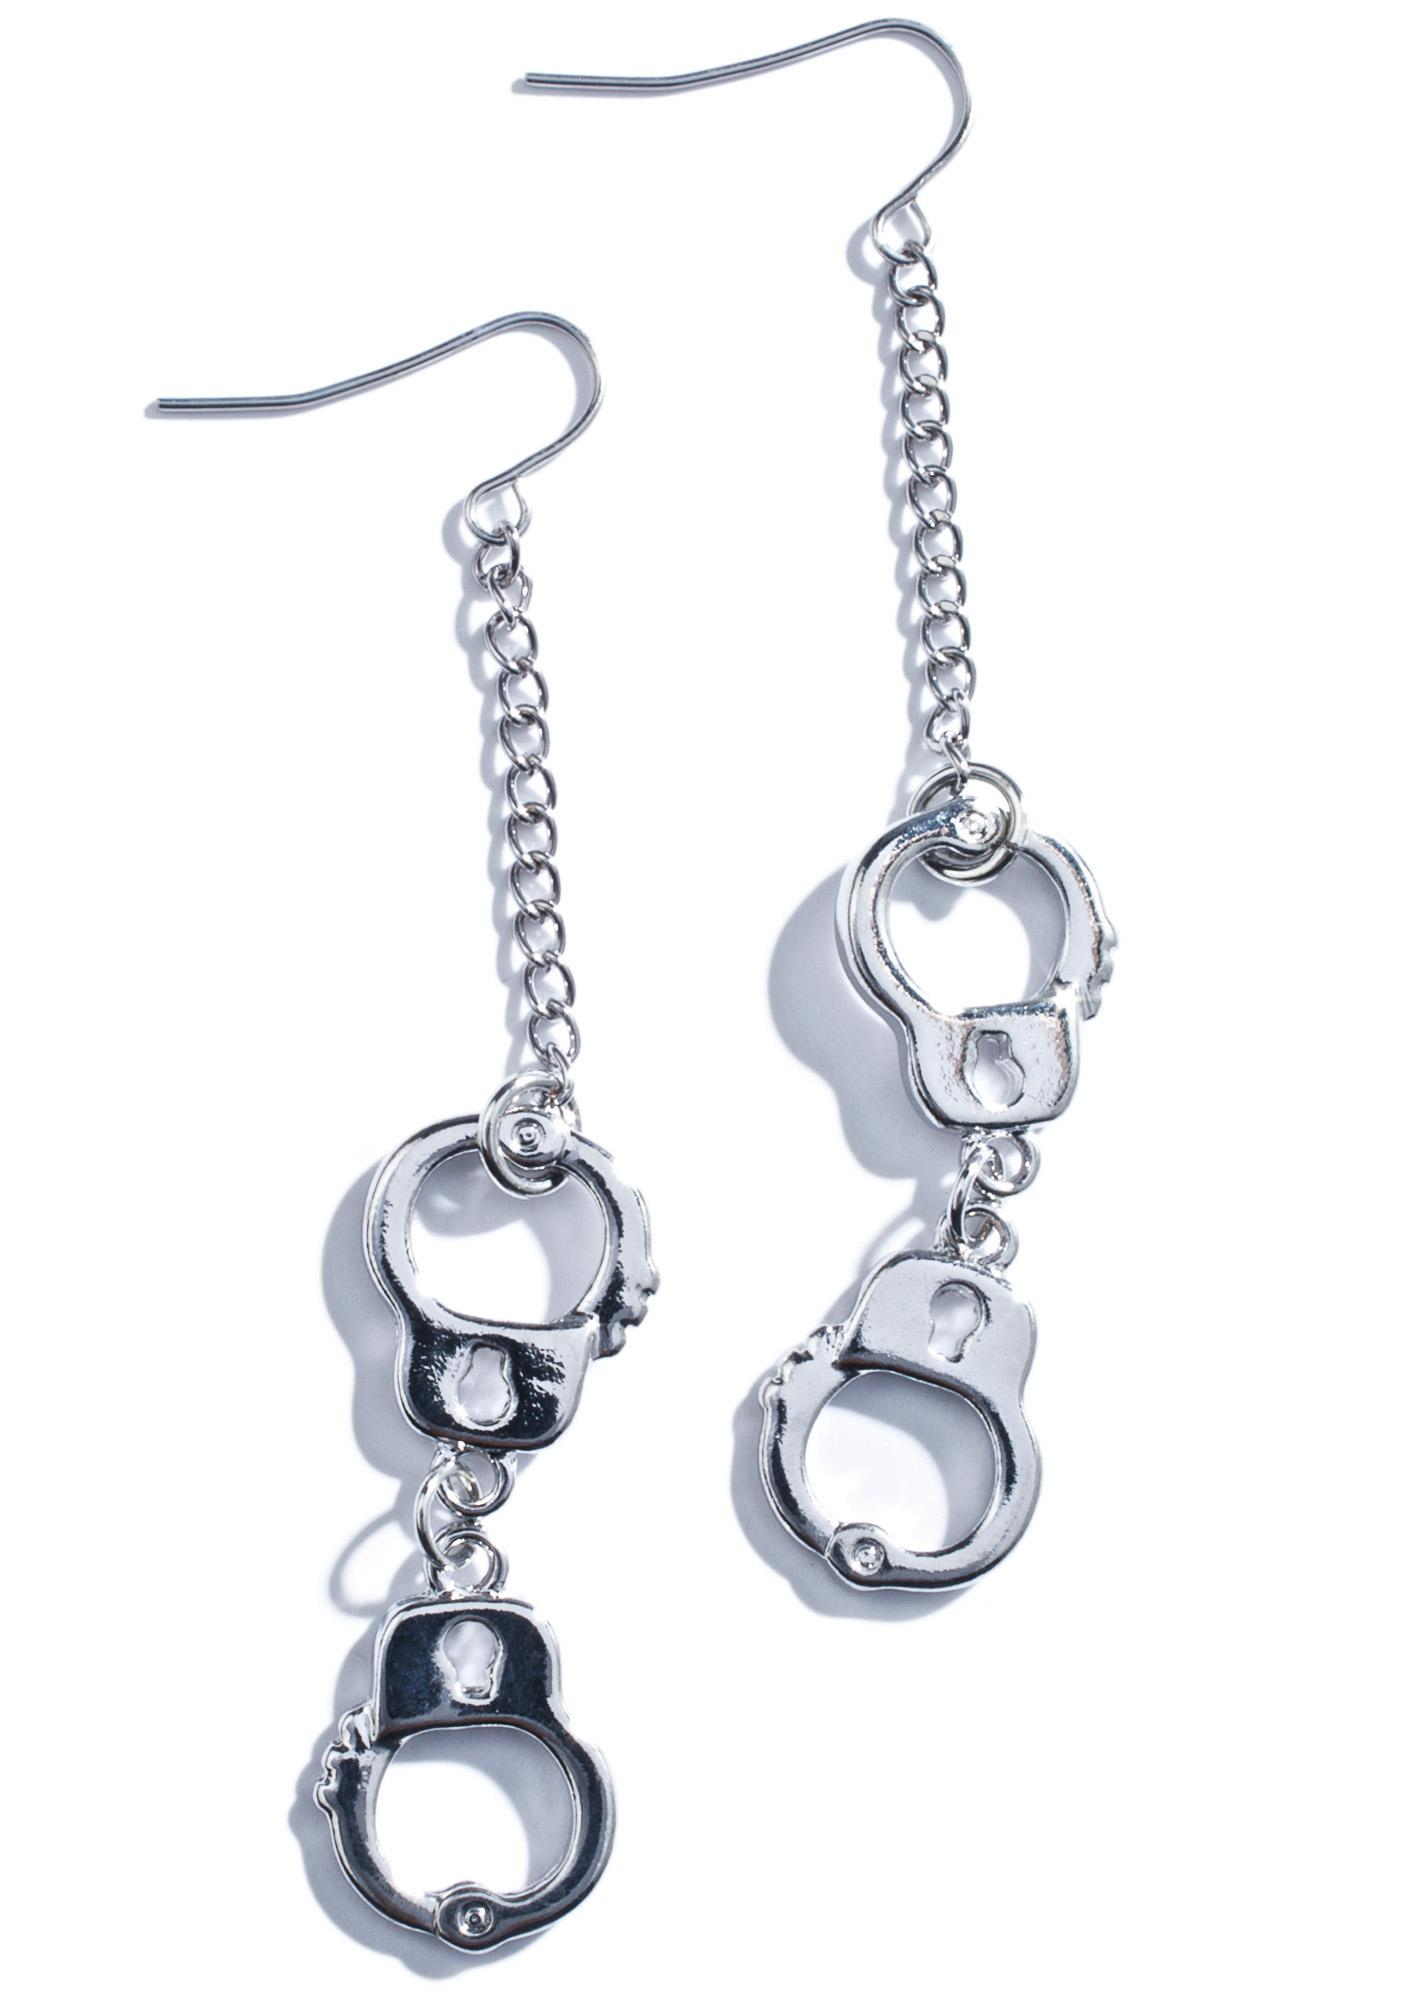 Lockup Earrings